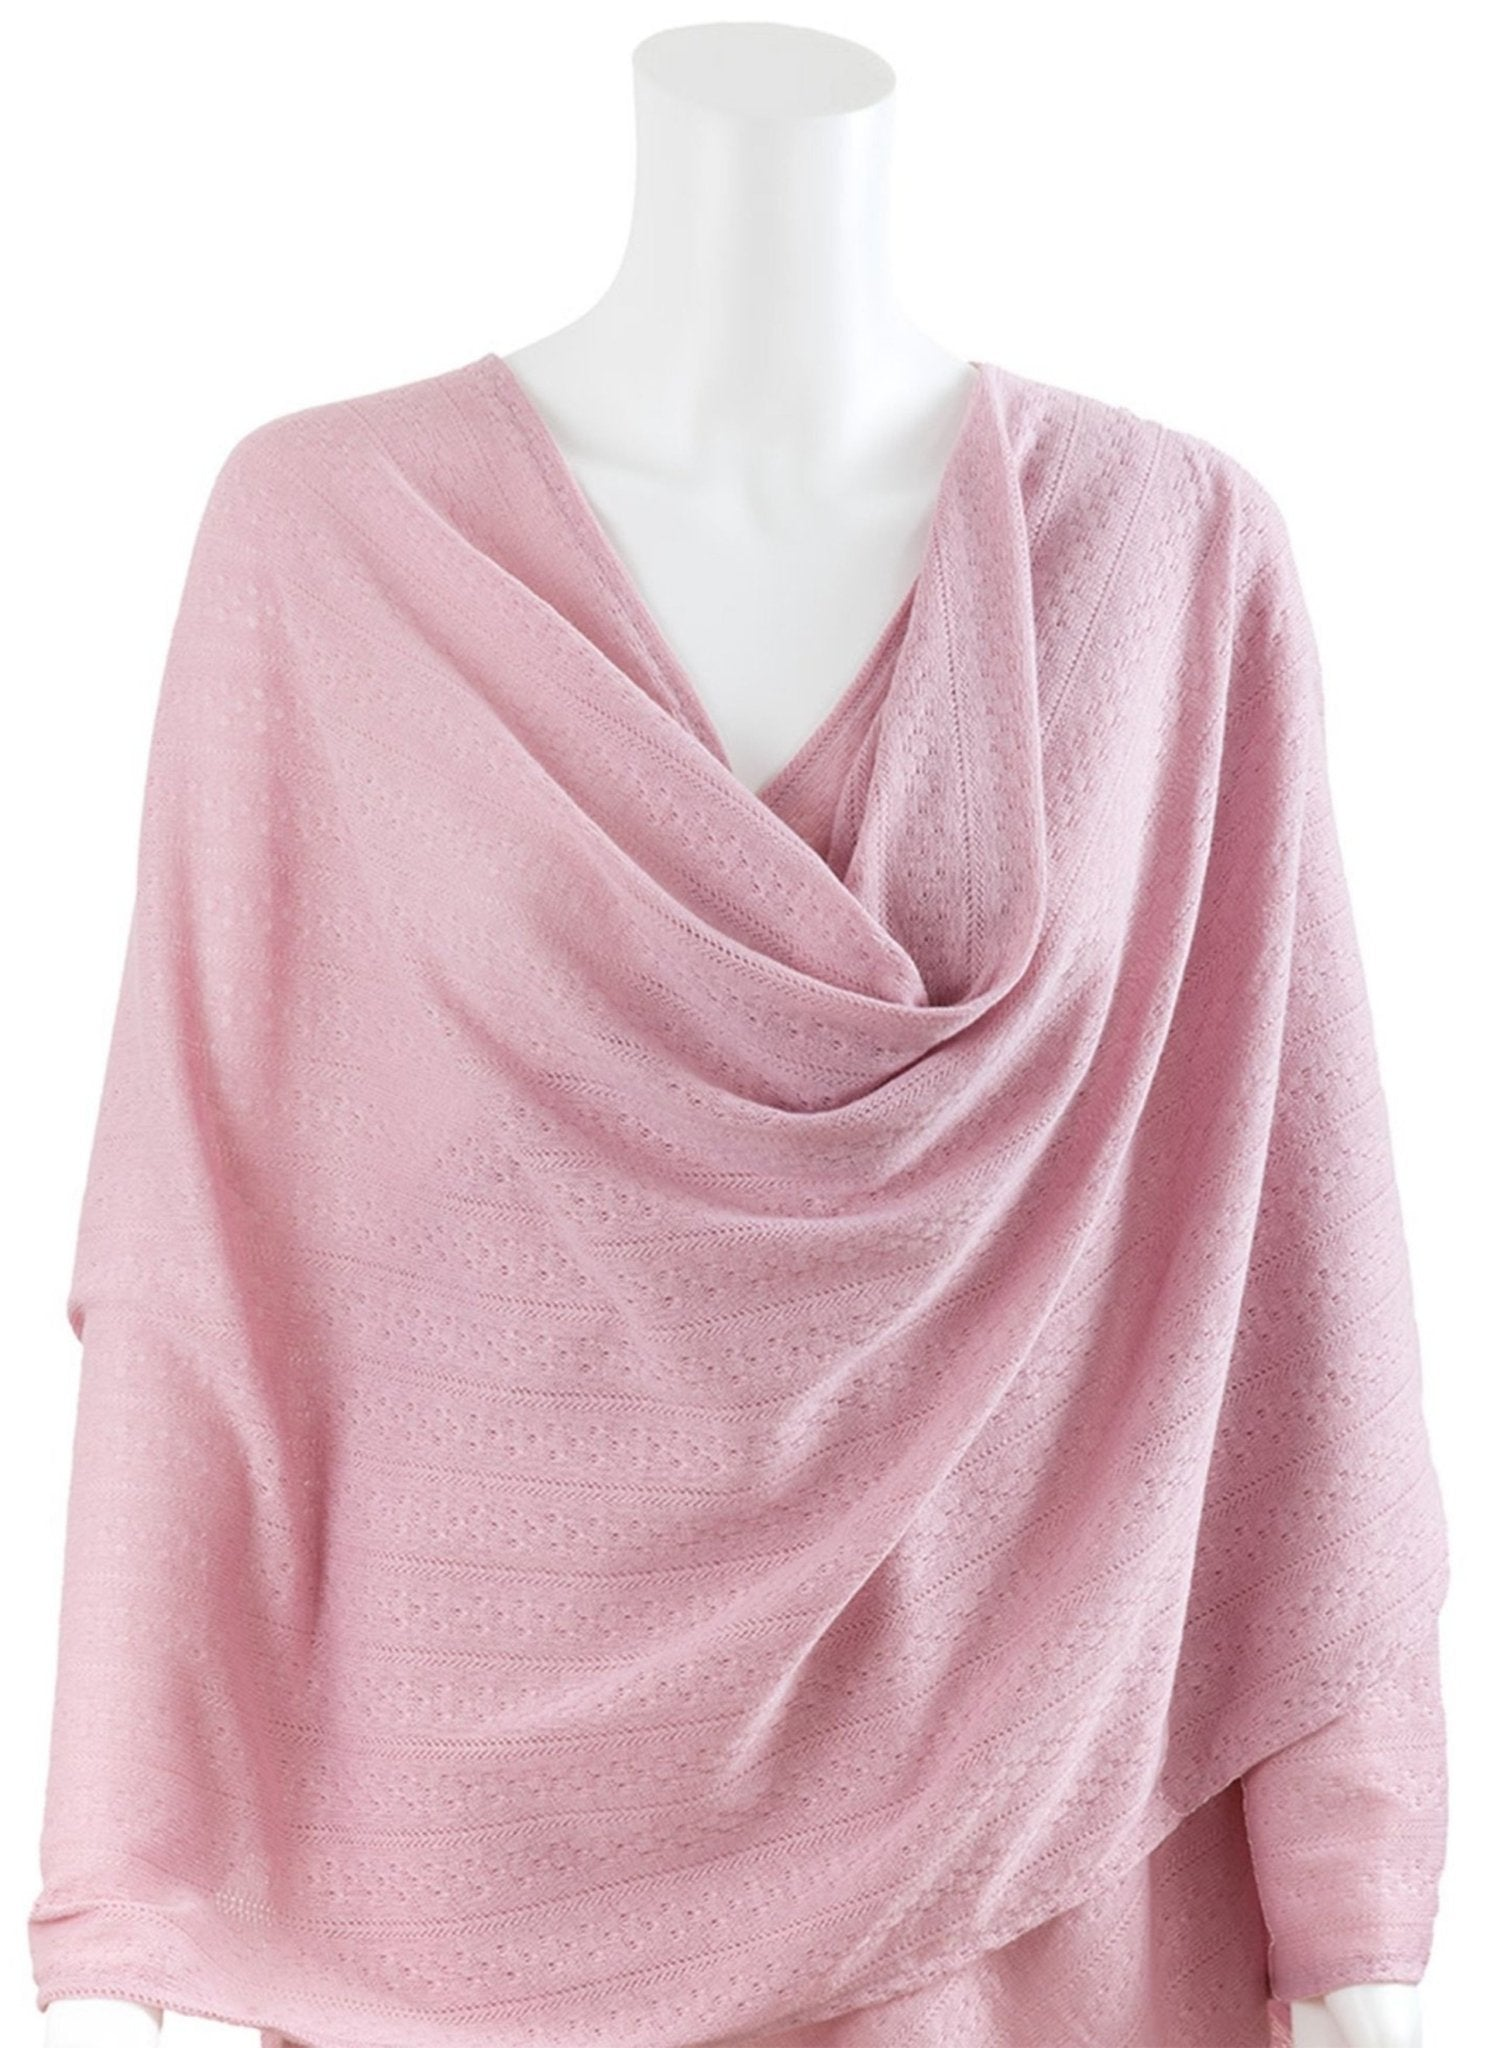 Nursing Cover Textured Knit fabric – Pink - Mums and Bumps